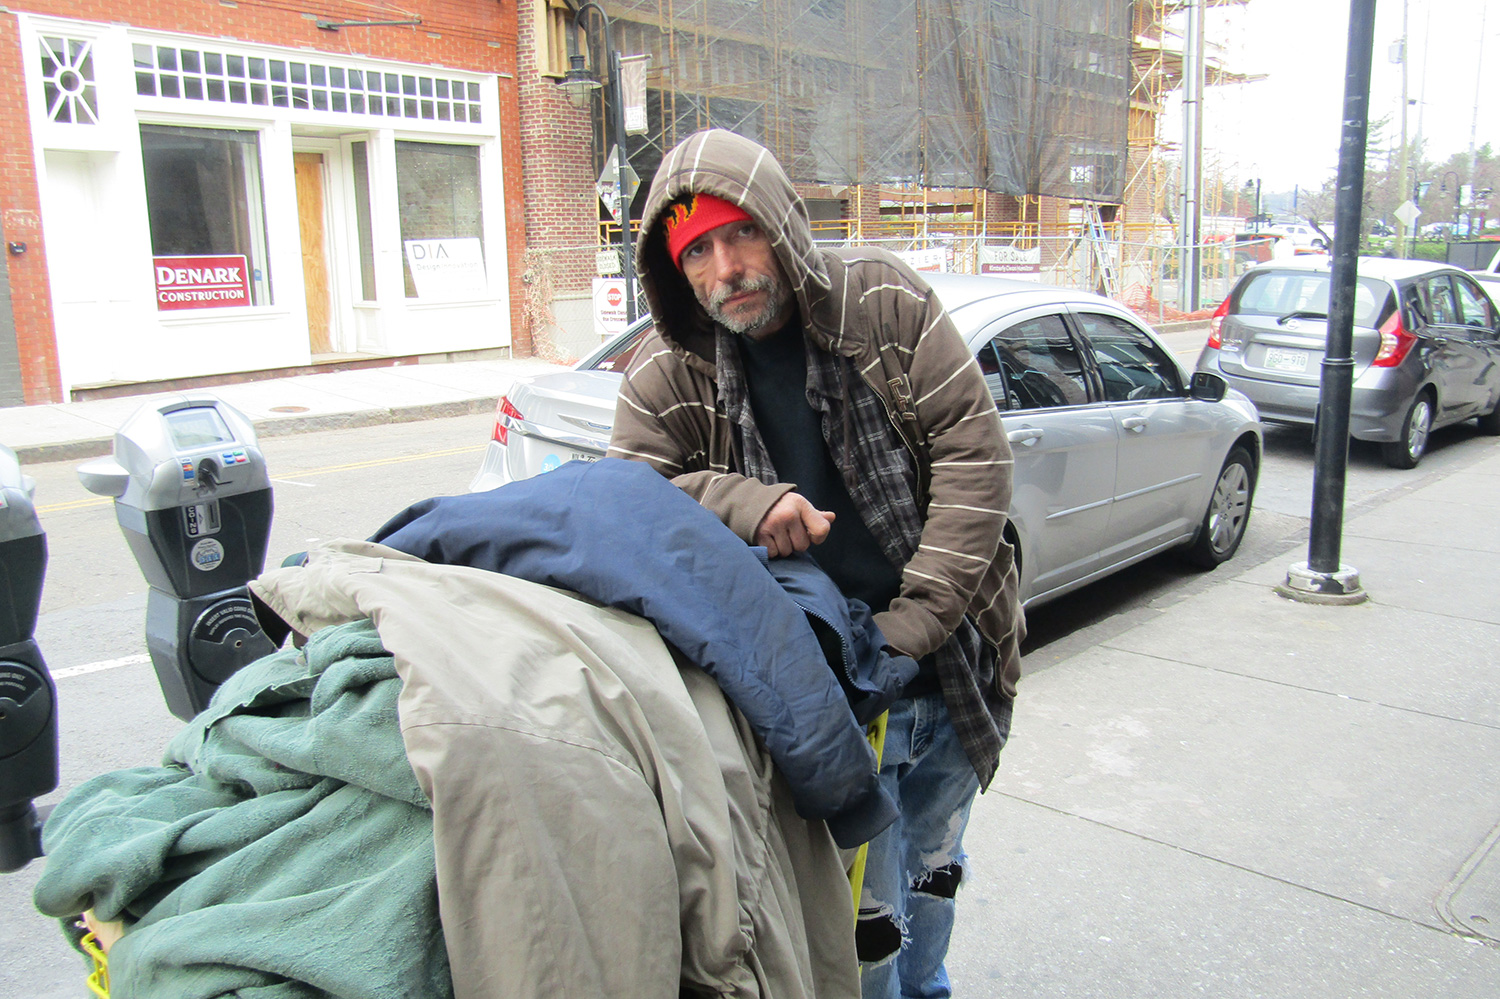 Photograph of a homeless man with a cart. The background is a city street with parked cars.